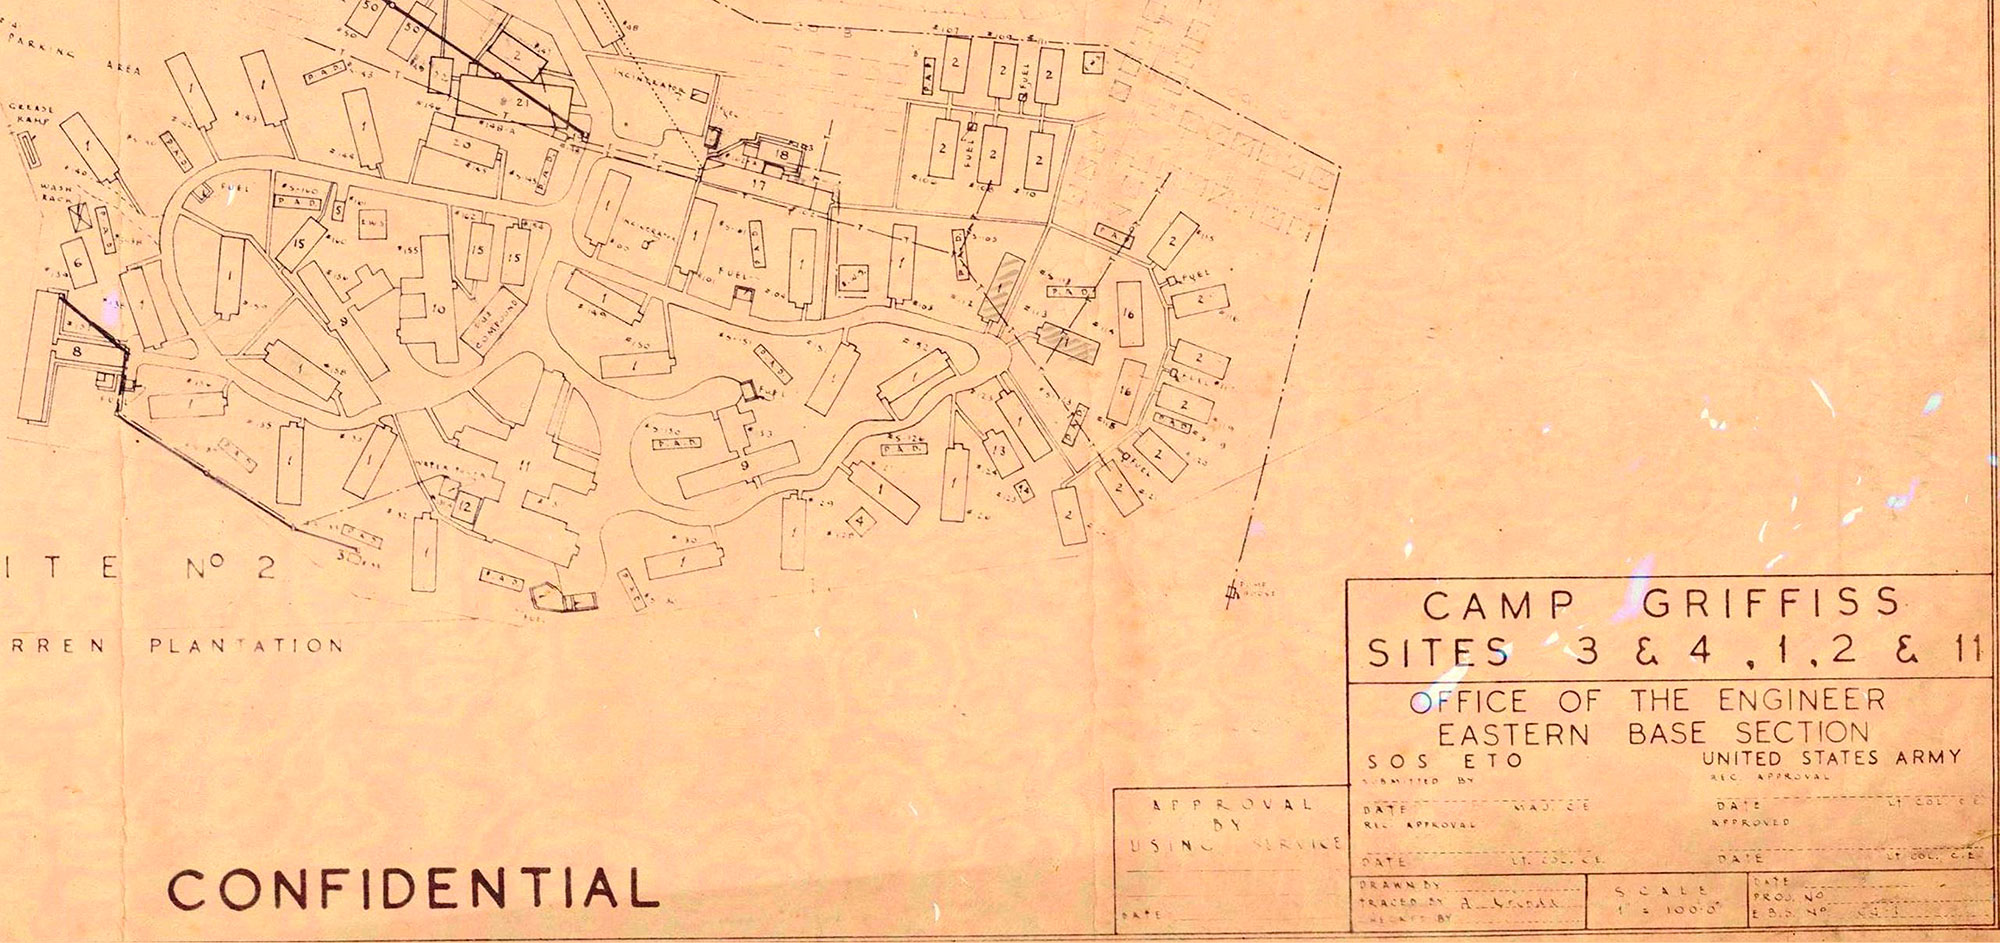 Map of Camp Griffiss